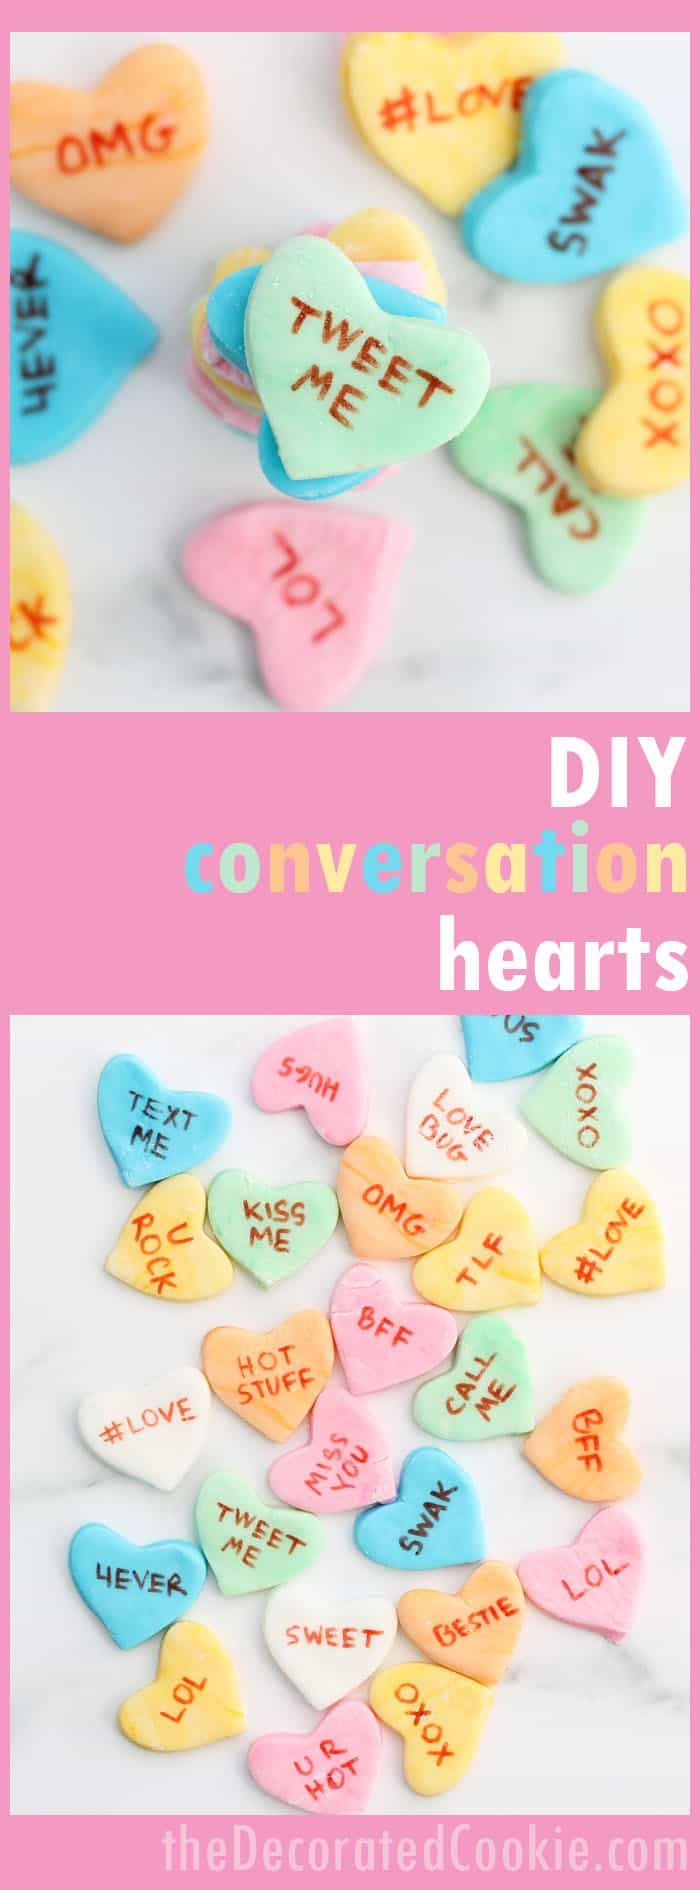 how to make homemade conversation hearts candy for valentine's day.